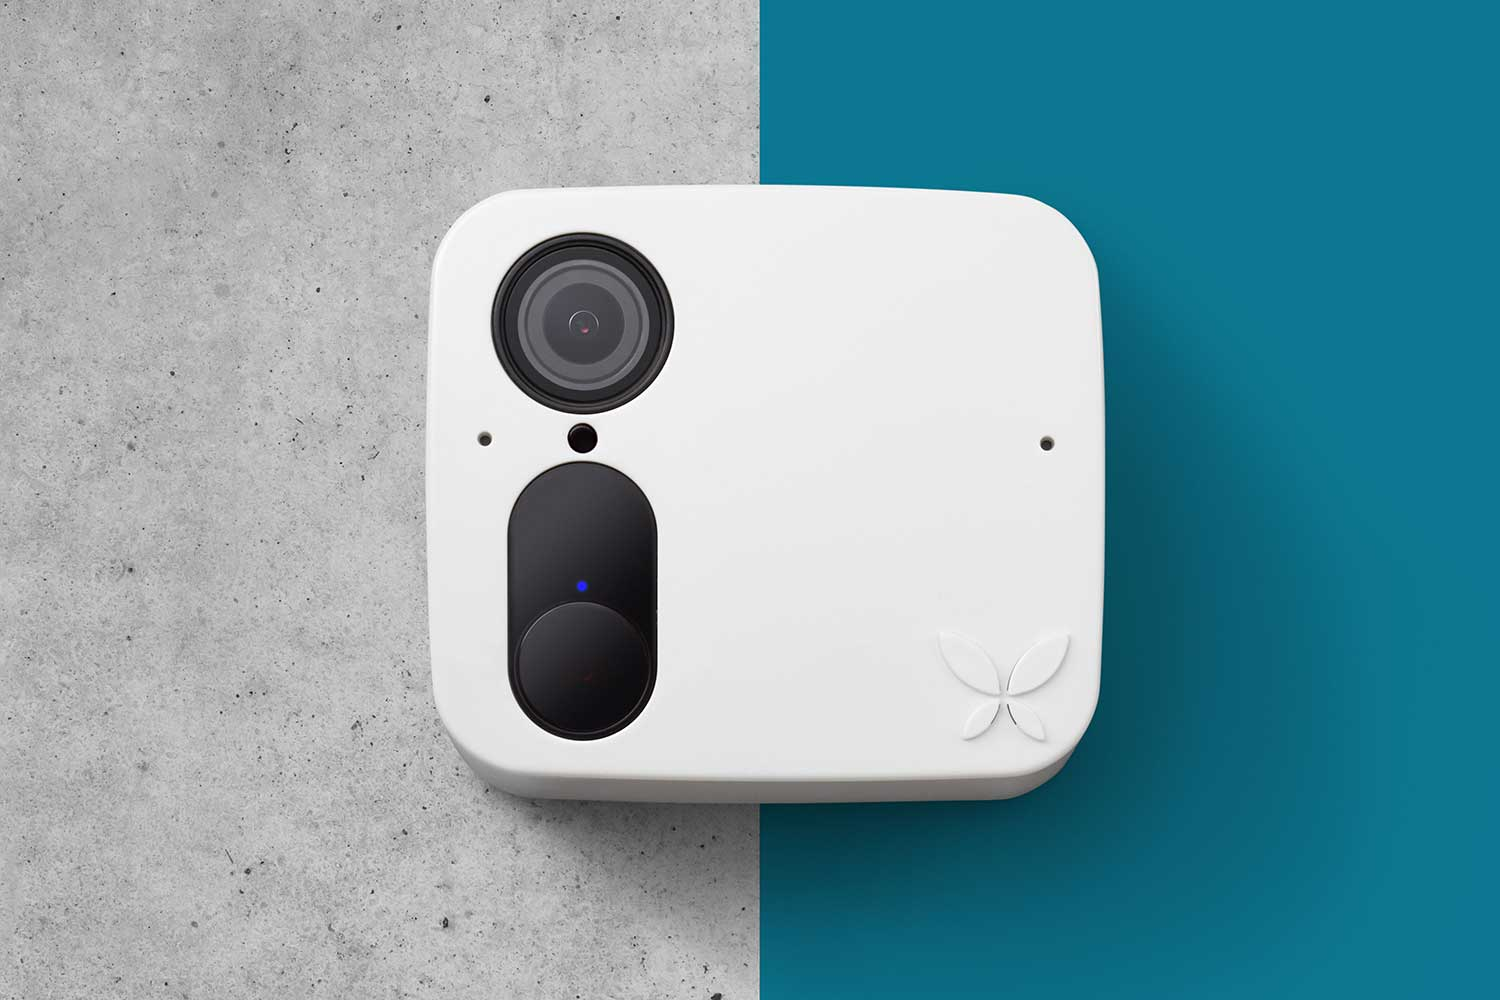 Wired vs Wireless Smart Cameras - blog post image